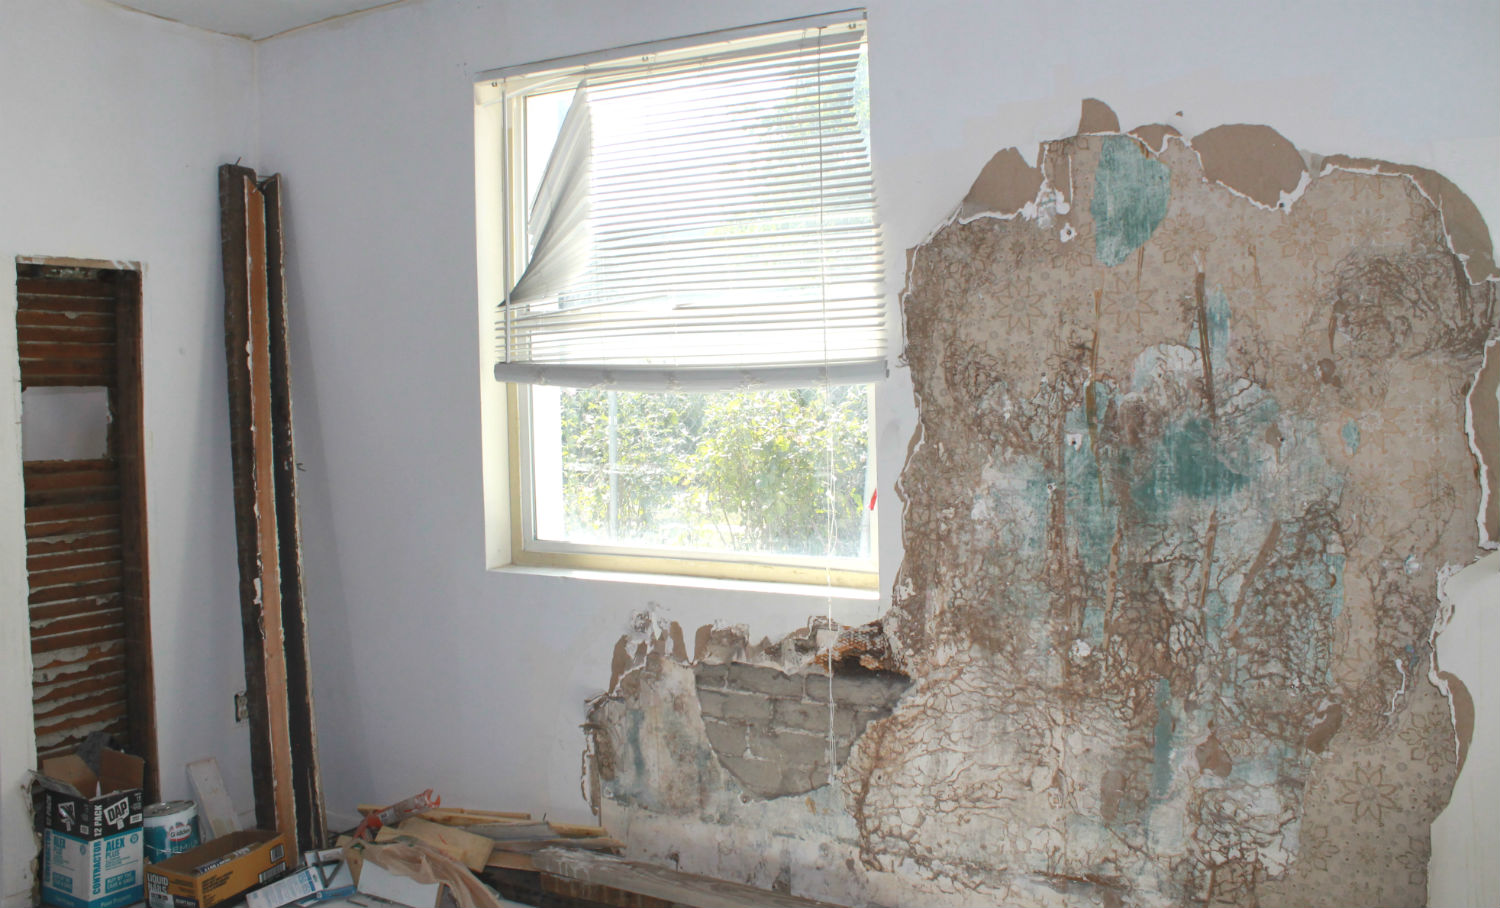 Raleigh Rental Property Being Restored After Mold Remediation Services